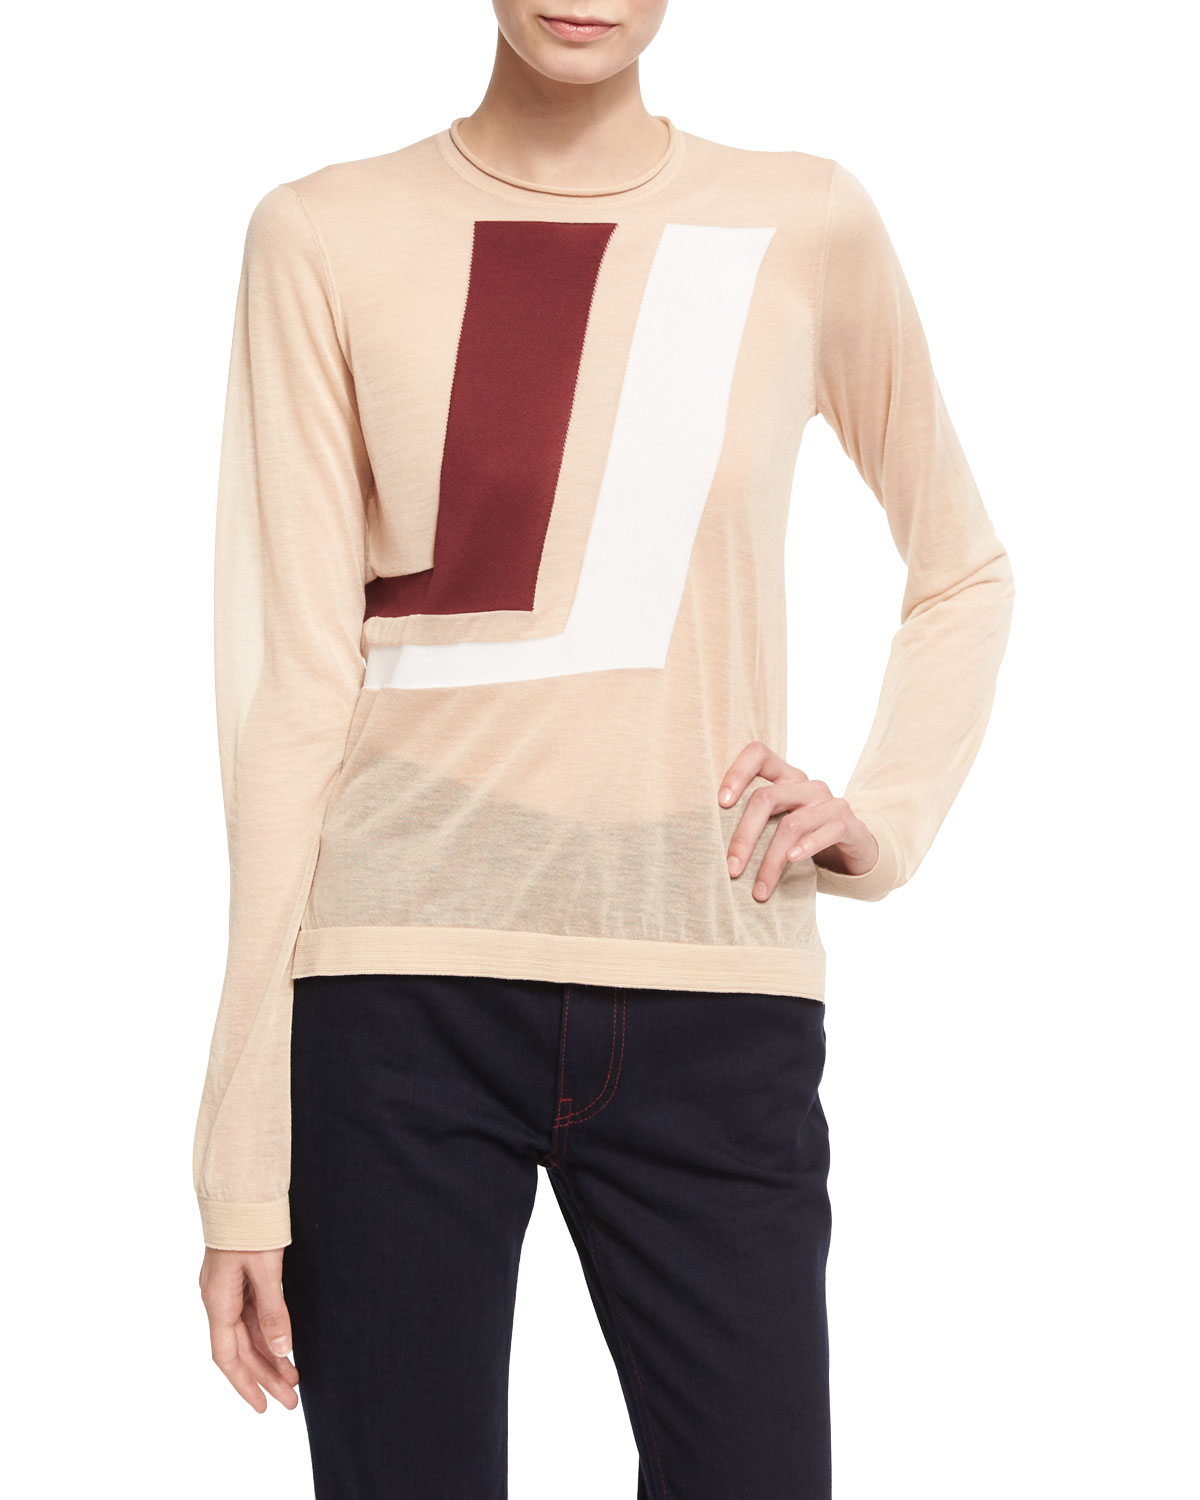 Two-Tone Graphic Sweater